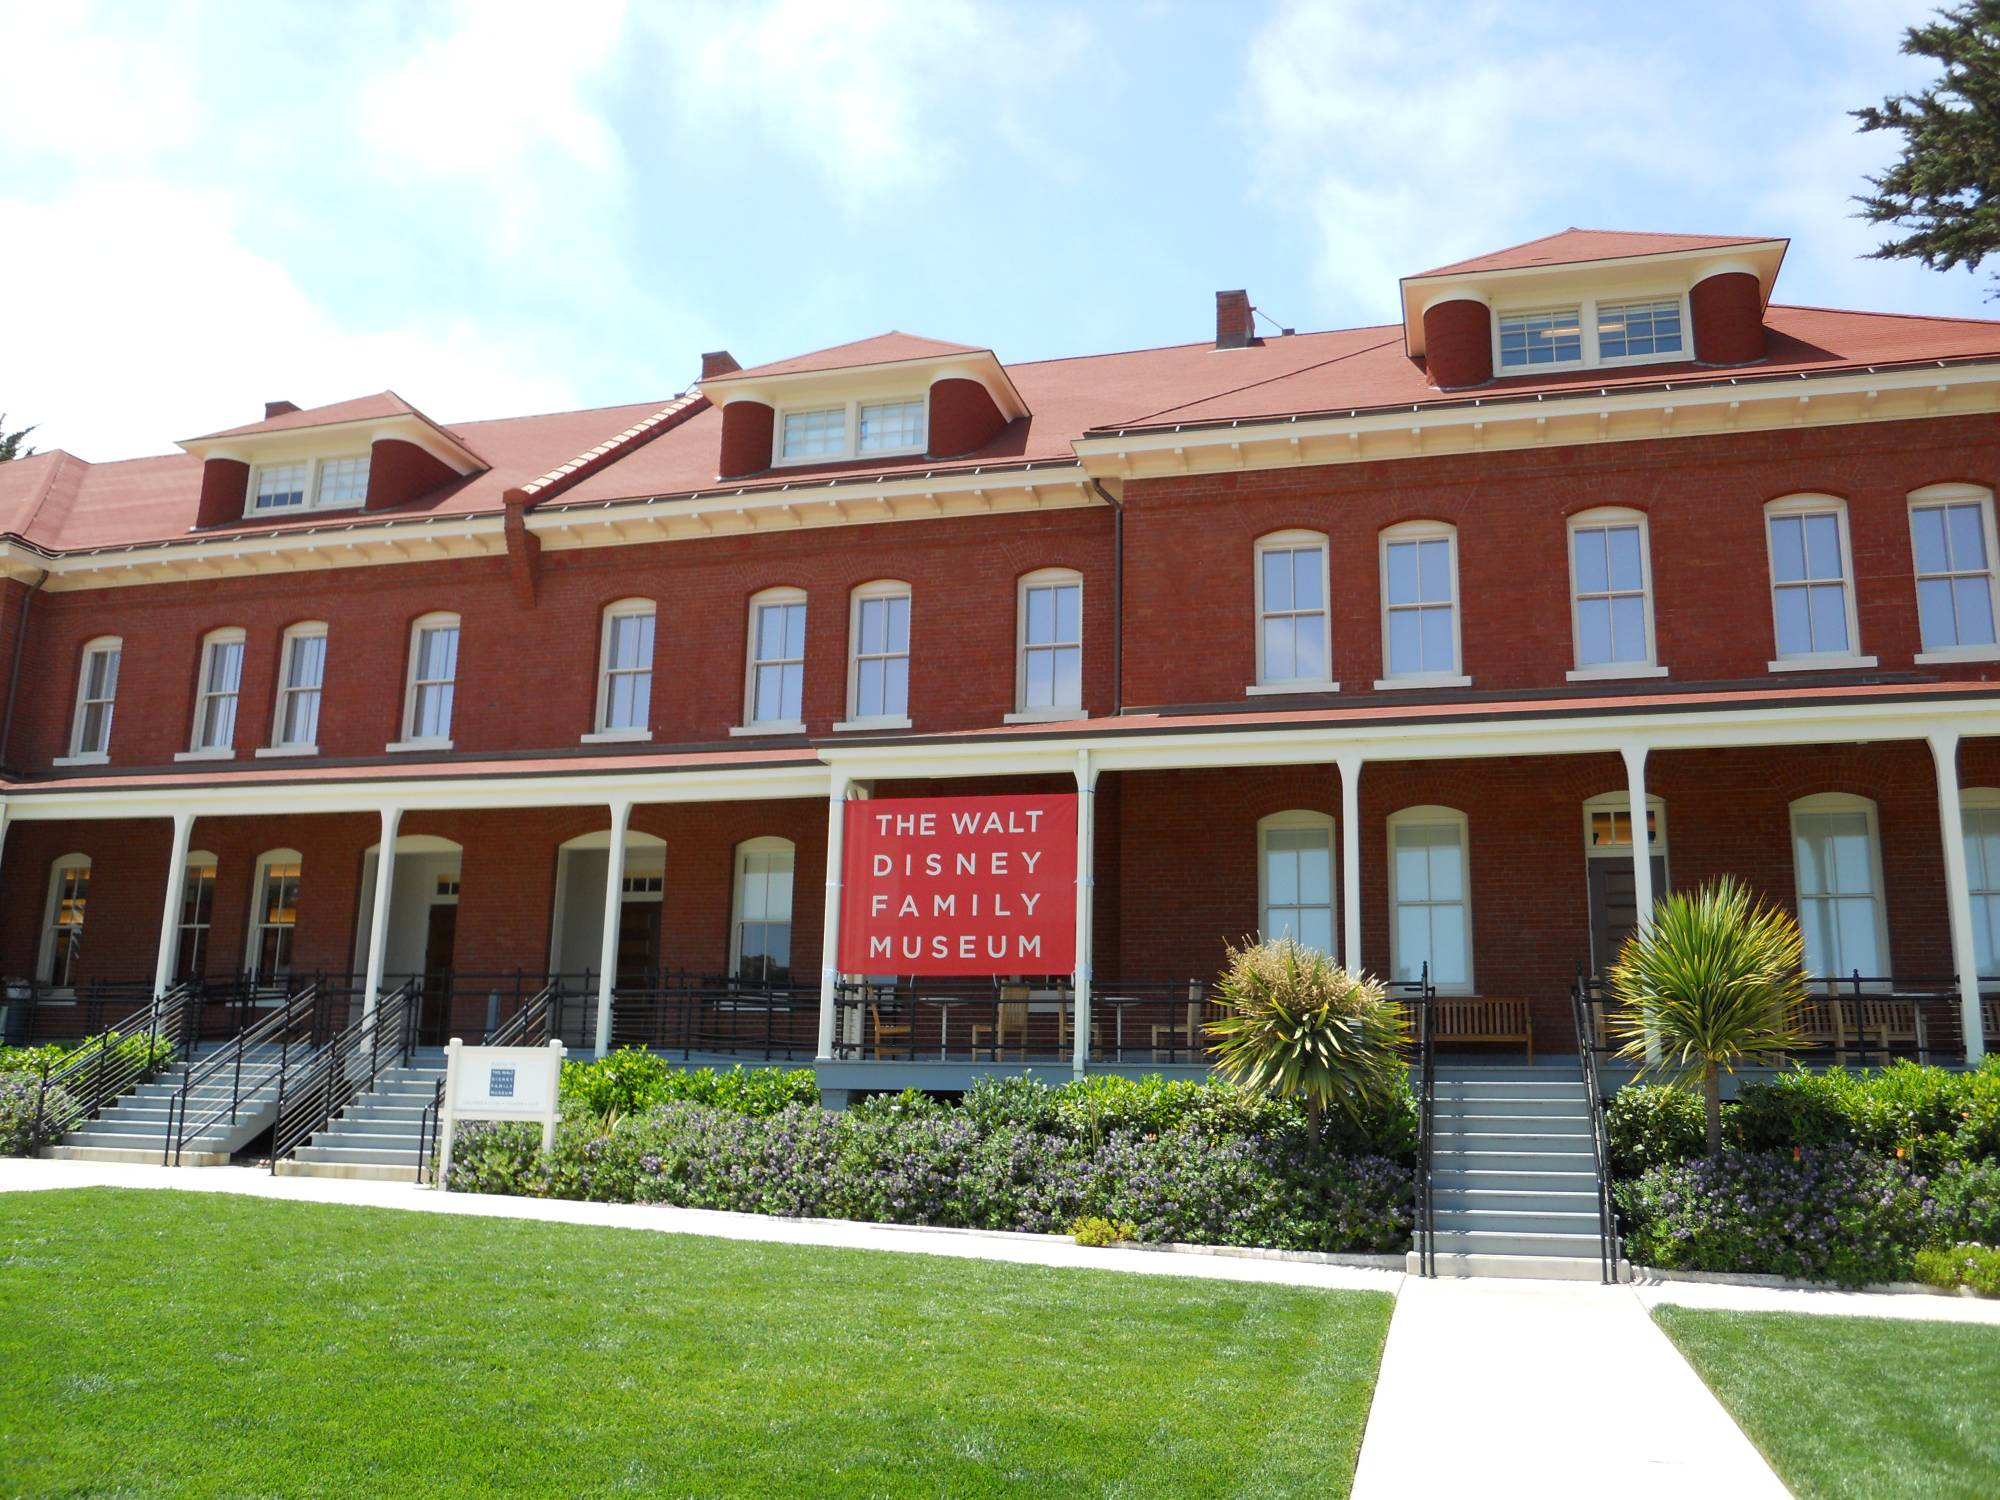 Learn more about Walt Disney at the Walt Disney Family Museum |PassPorter.com